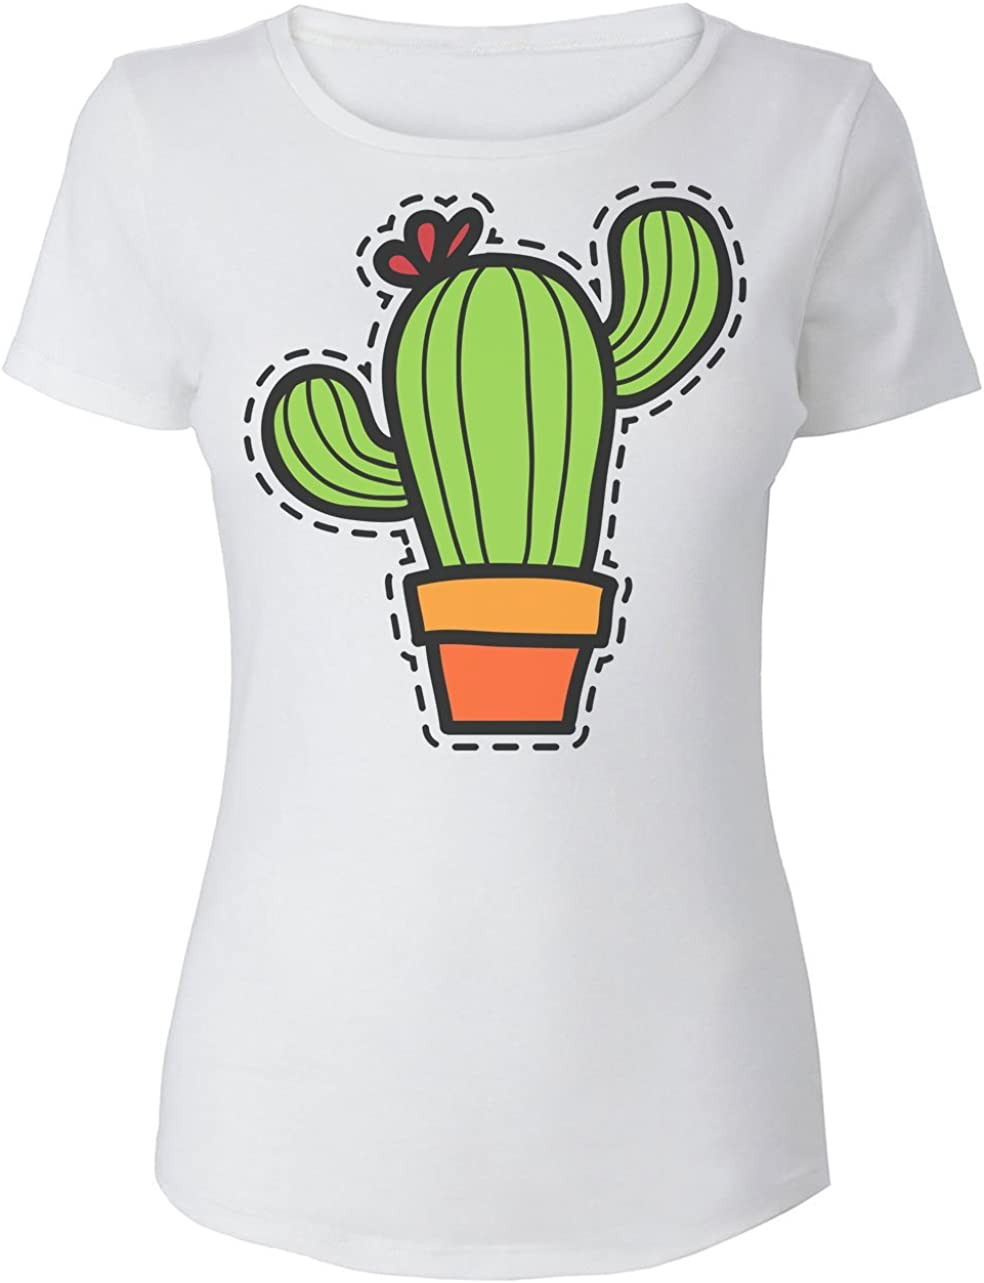 Finest Prints Nice Colorful Cactus Patch Camiseta para Mujer ...